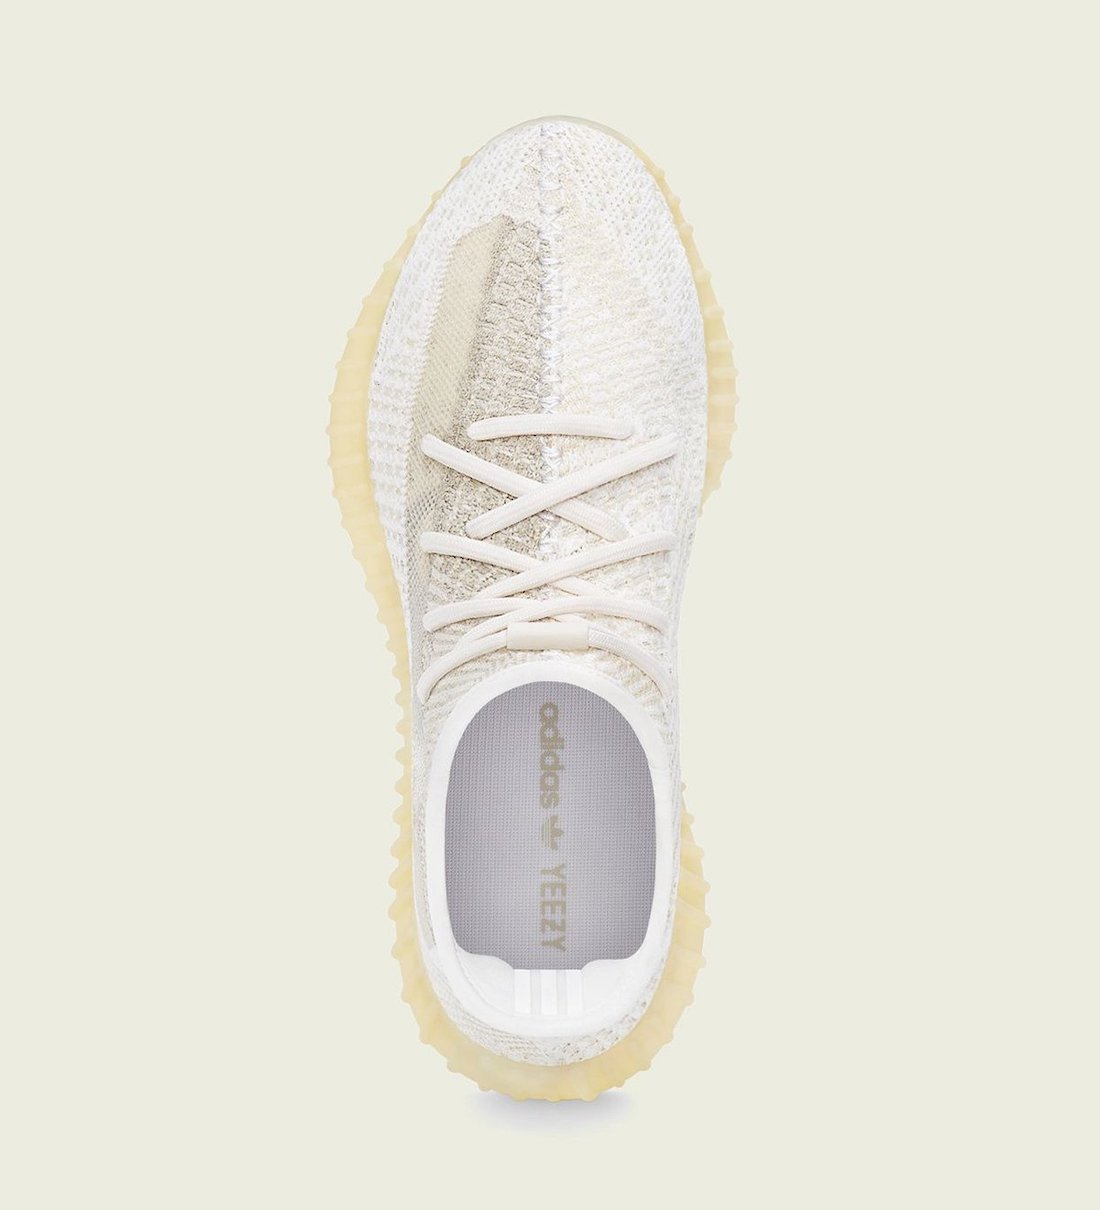 adidas Yeezy Boost 350 V2 Natural FZ5246 Release Date